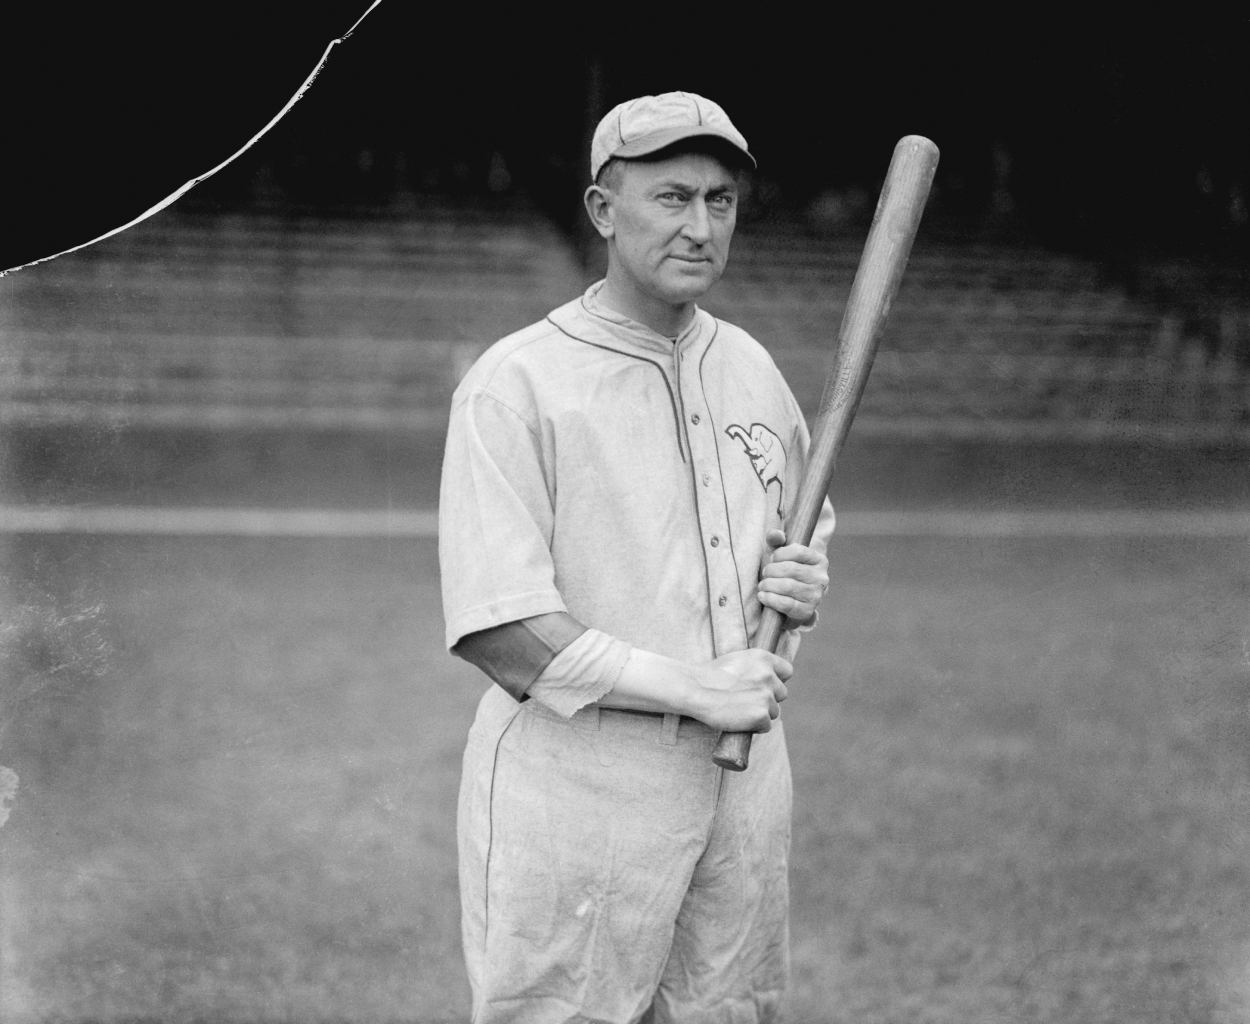 Ty Cobb poses for a photo while holding a bat